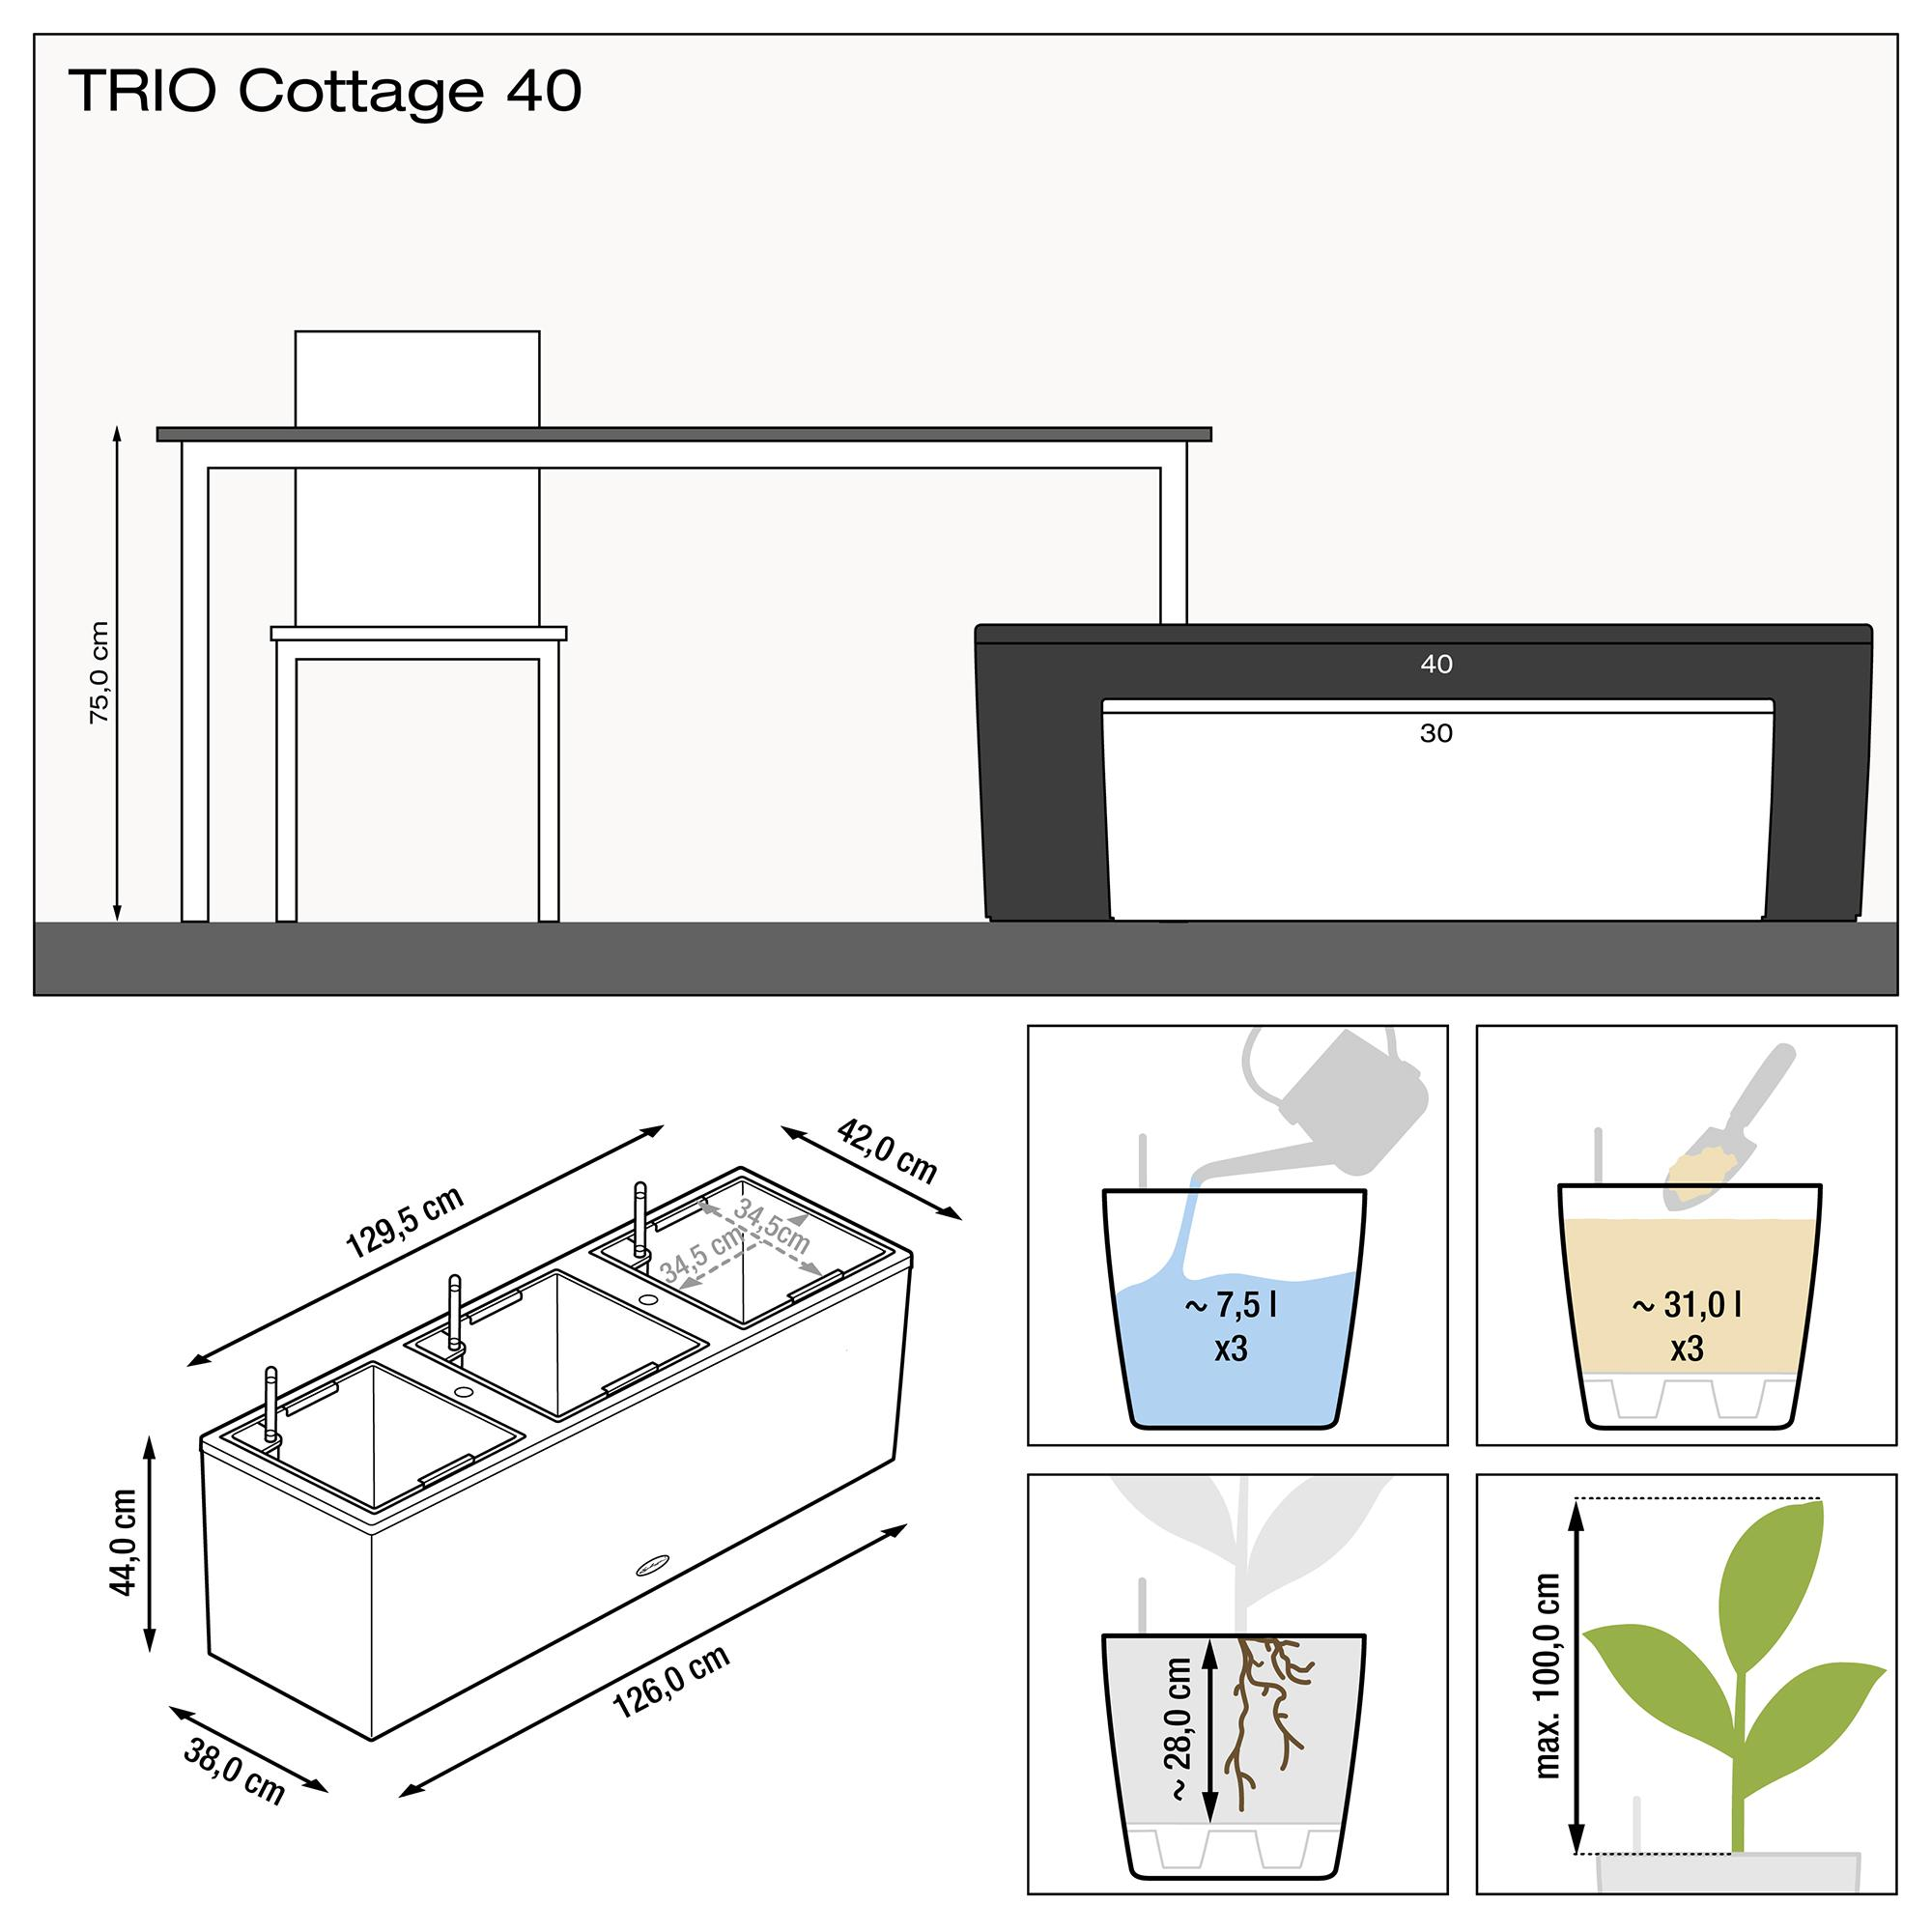 le_trio-cottage40_product_addi_nz